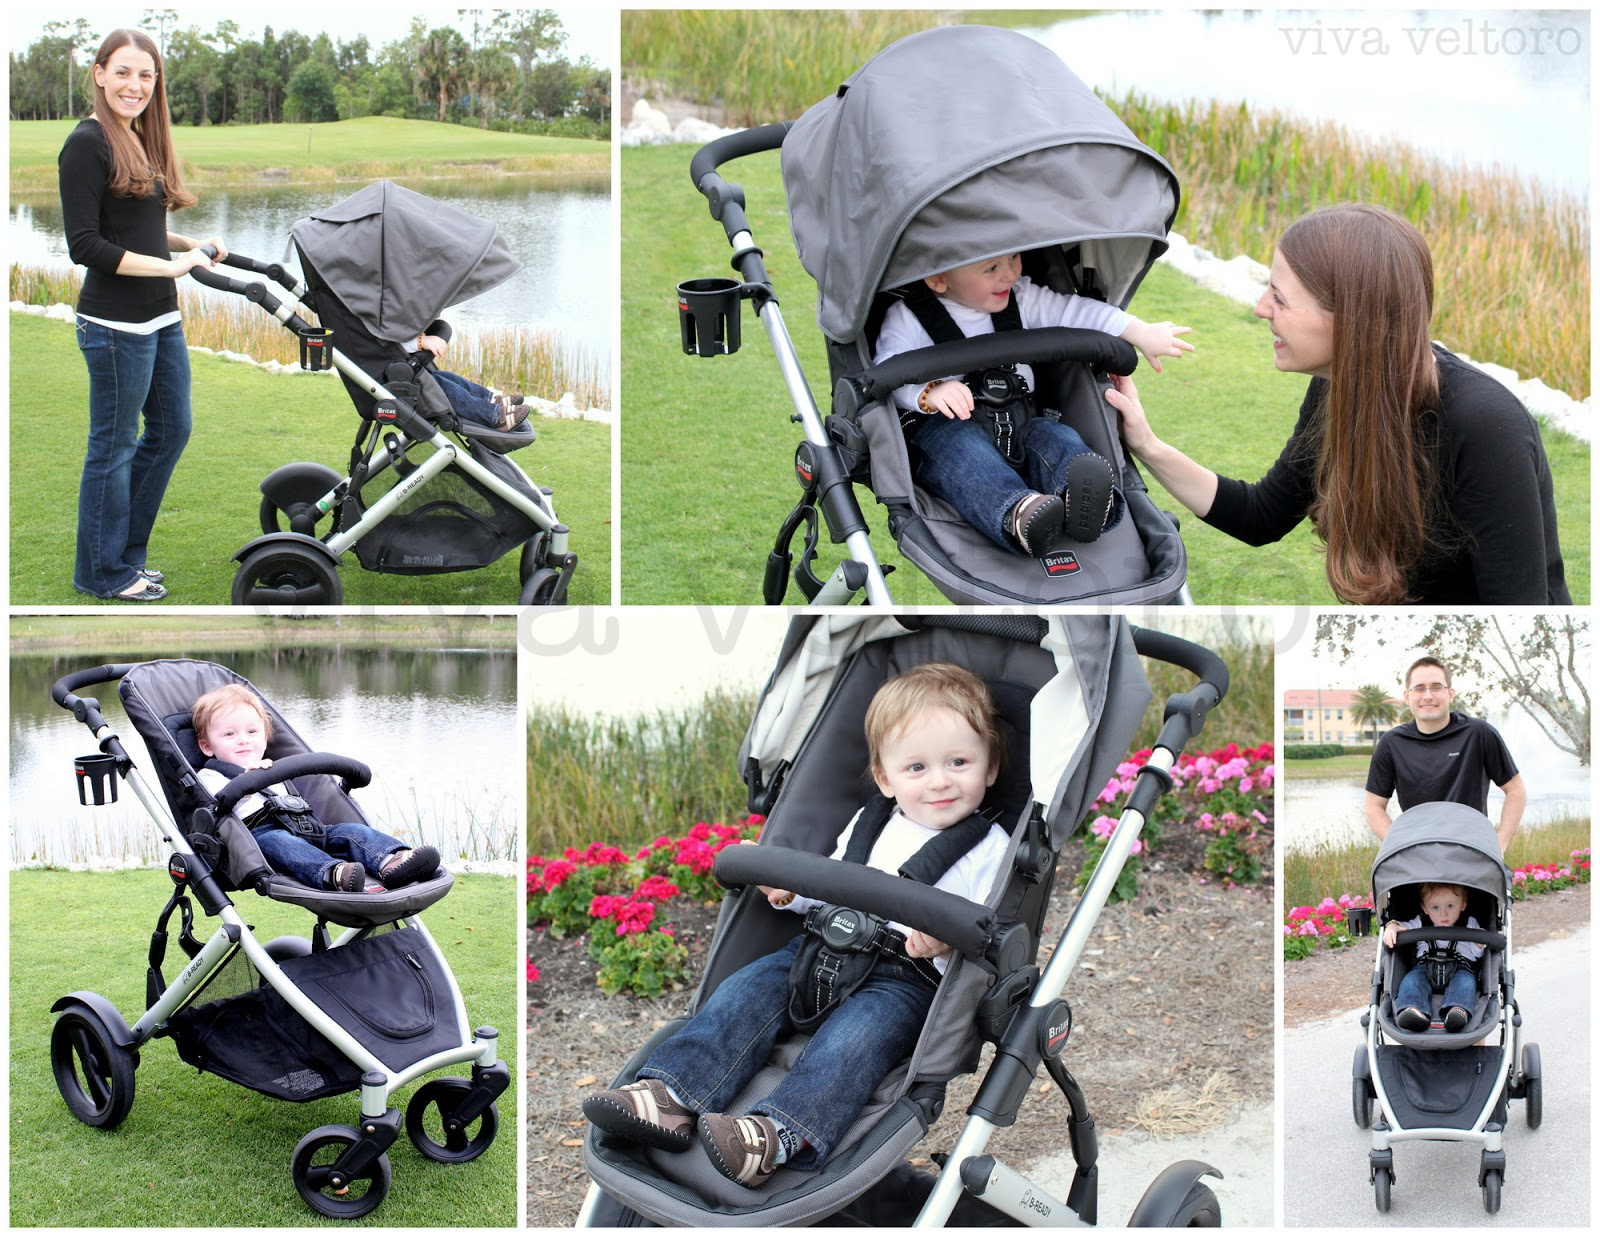 sc 1 st  Thrifty Nifty Mommy & Strolling into Spring with the Britax B-Ready - Thrifty Nifty Mommy